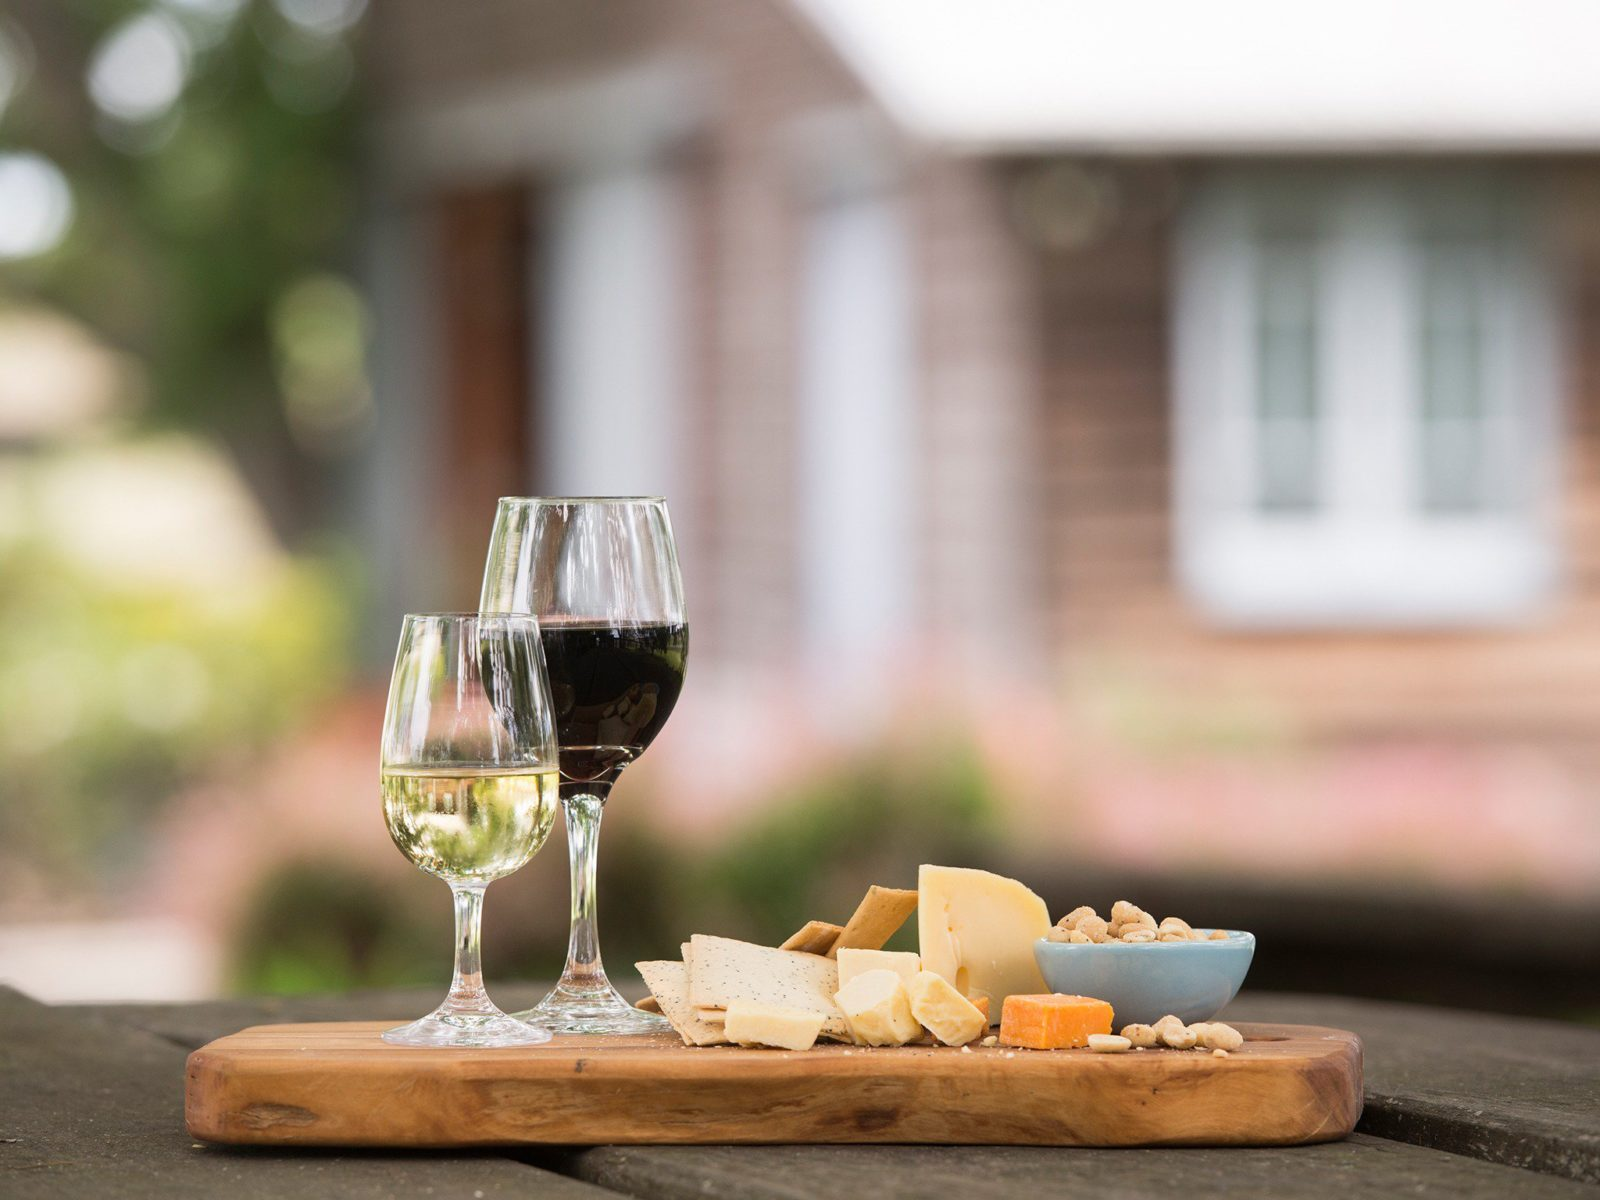 Image of cheese platter with 2 glasses of wine